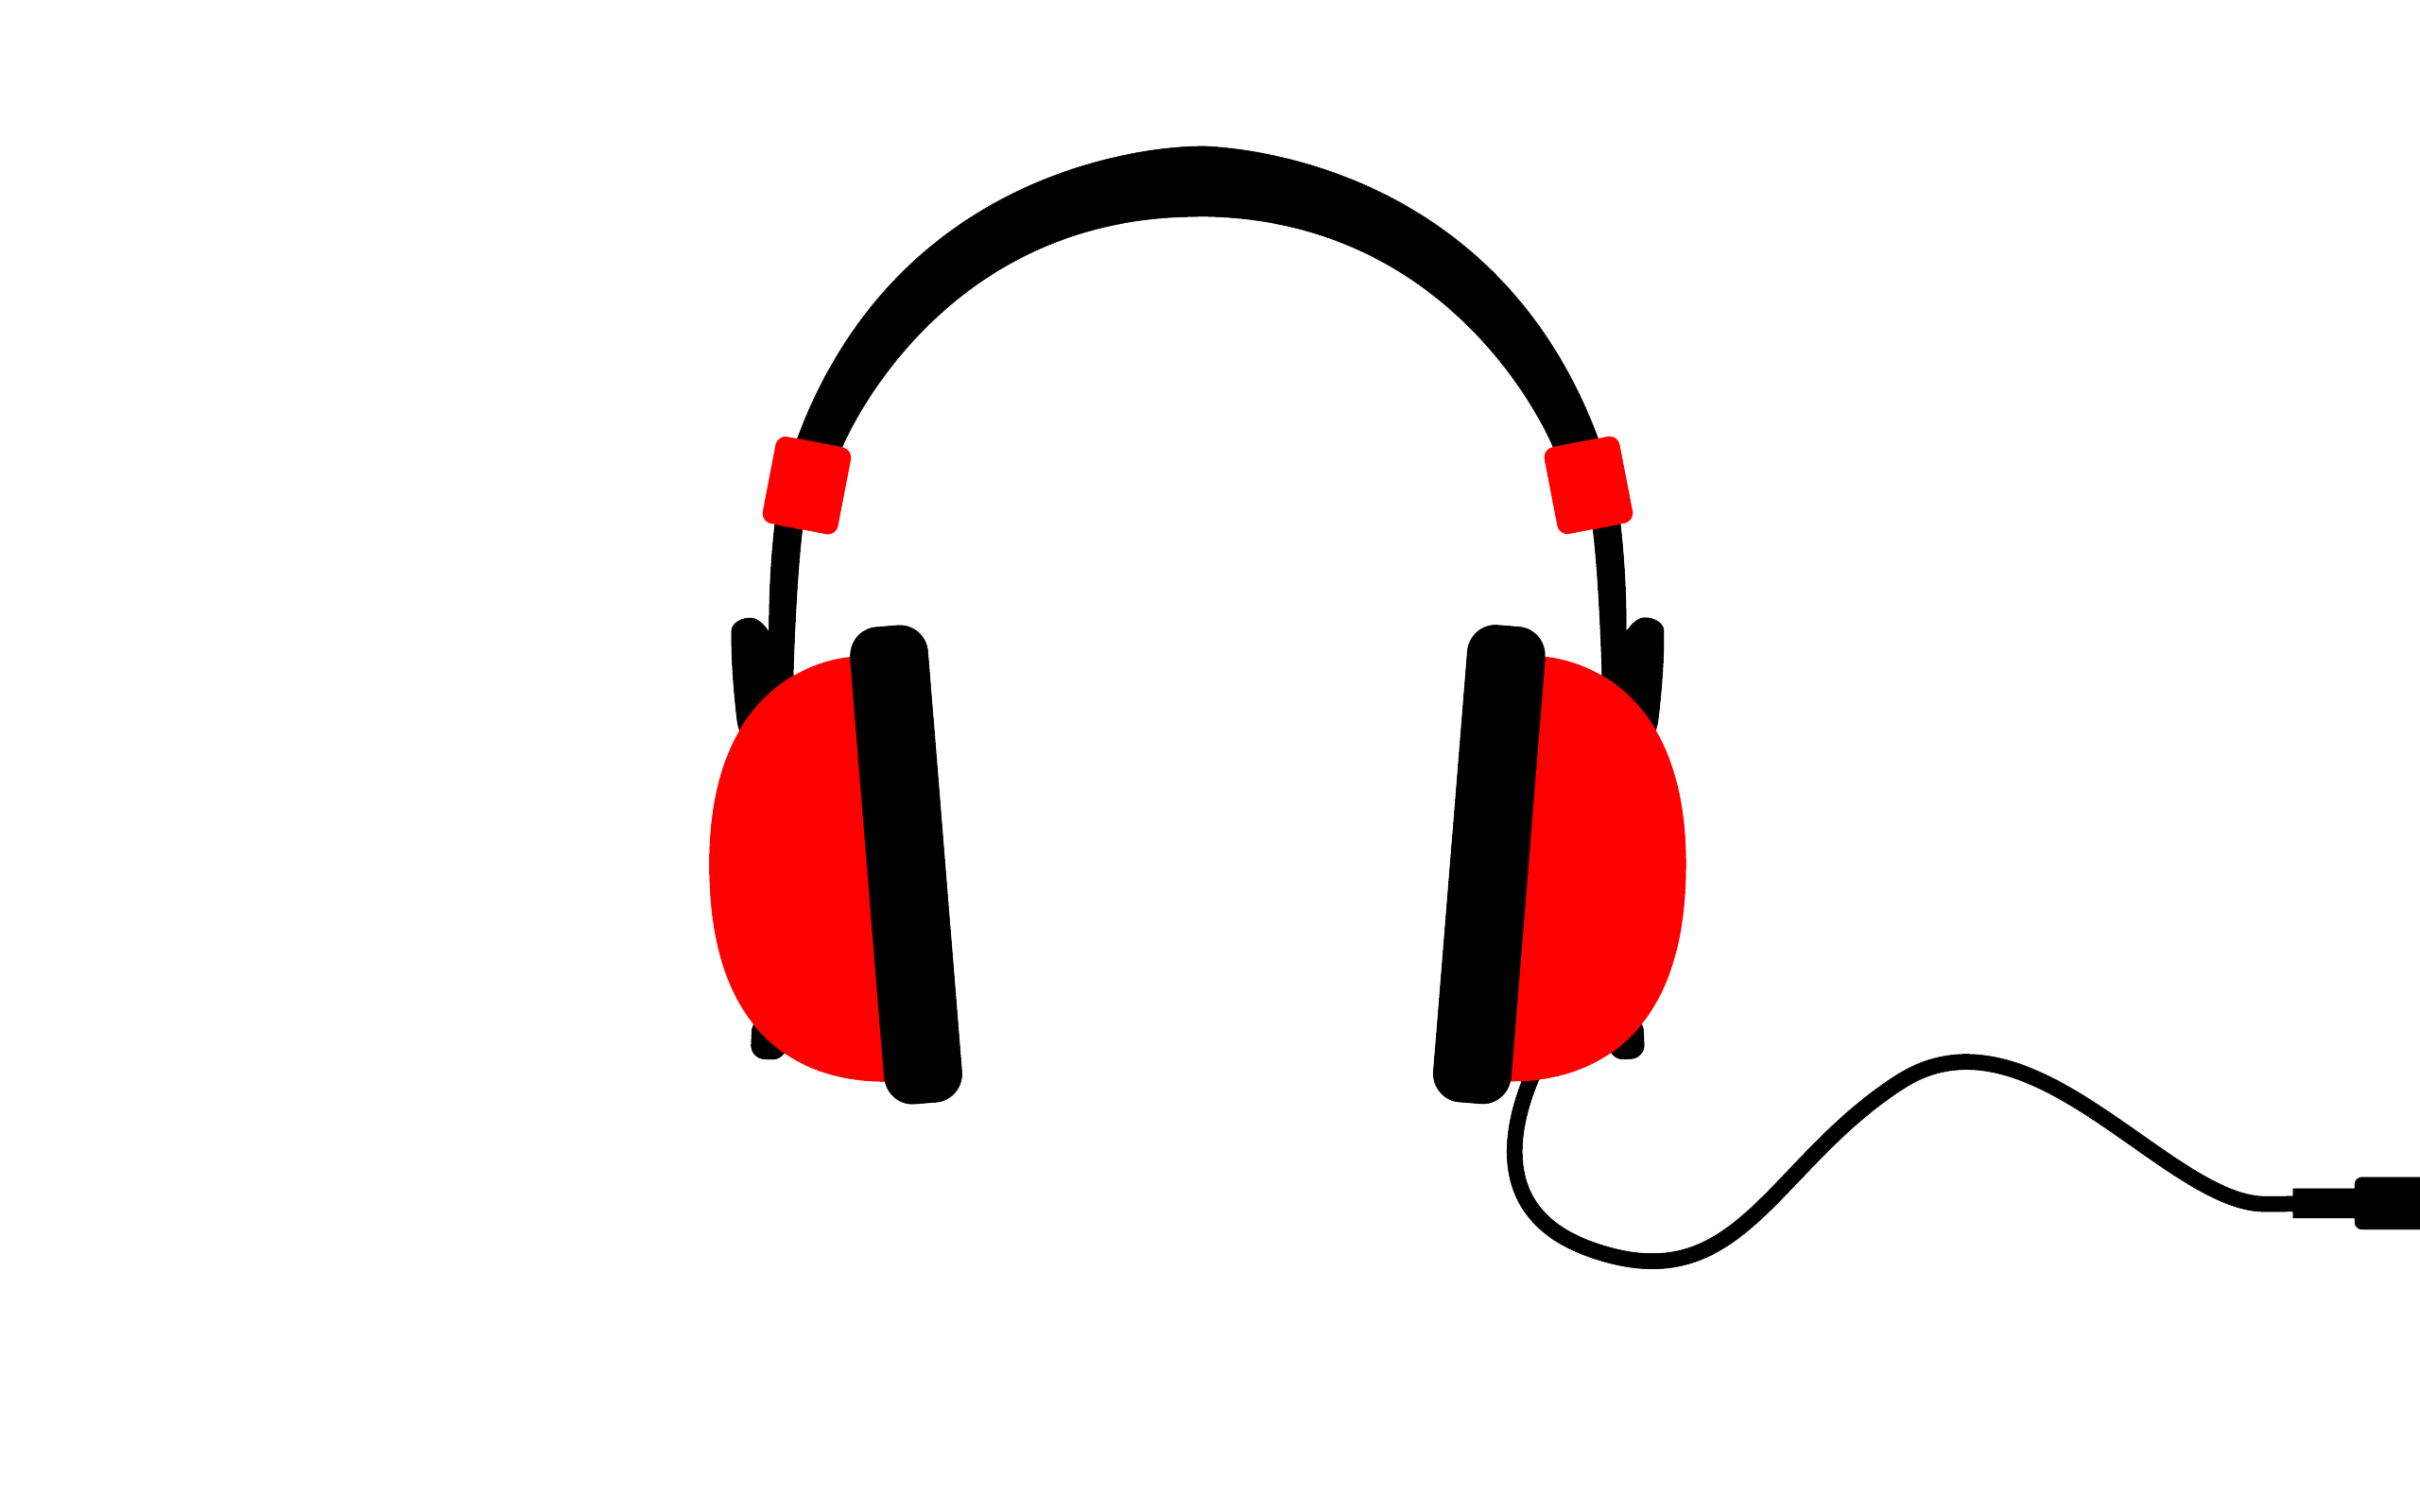 download headphones clipart hq png image freepngimg birds flying clipart free bird flying clip art black and white